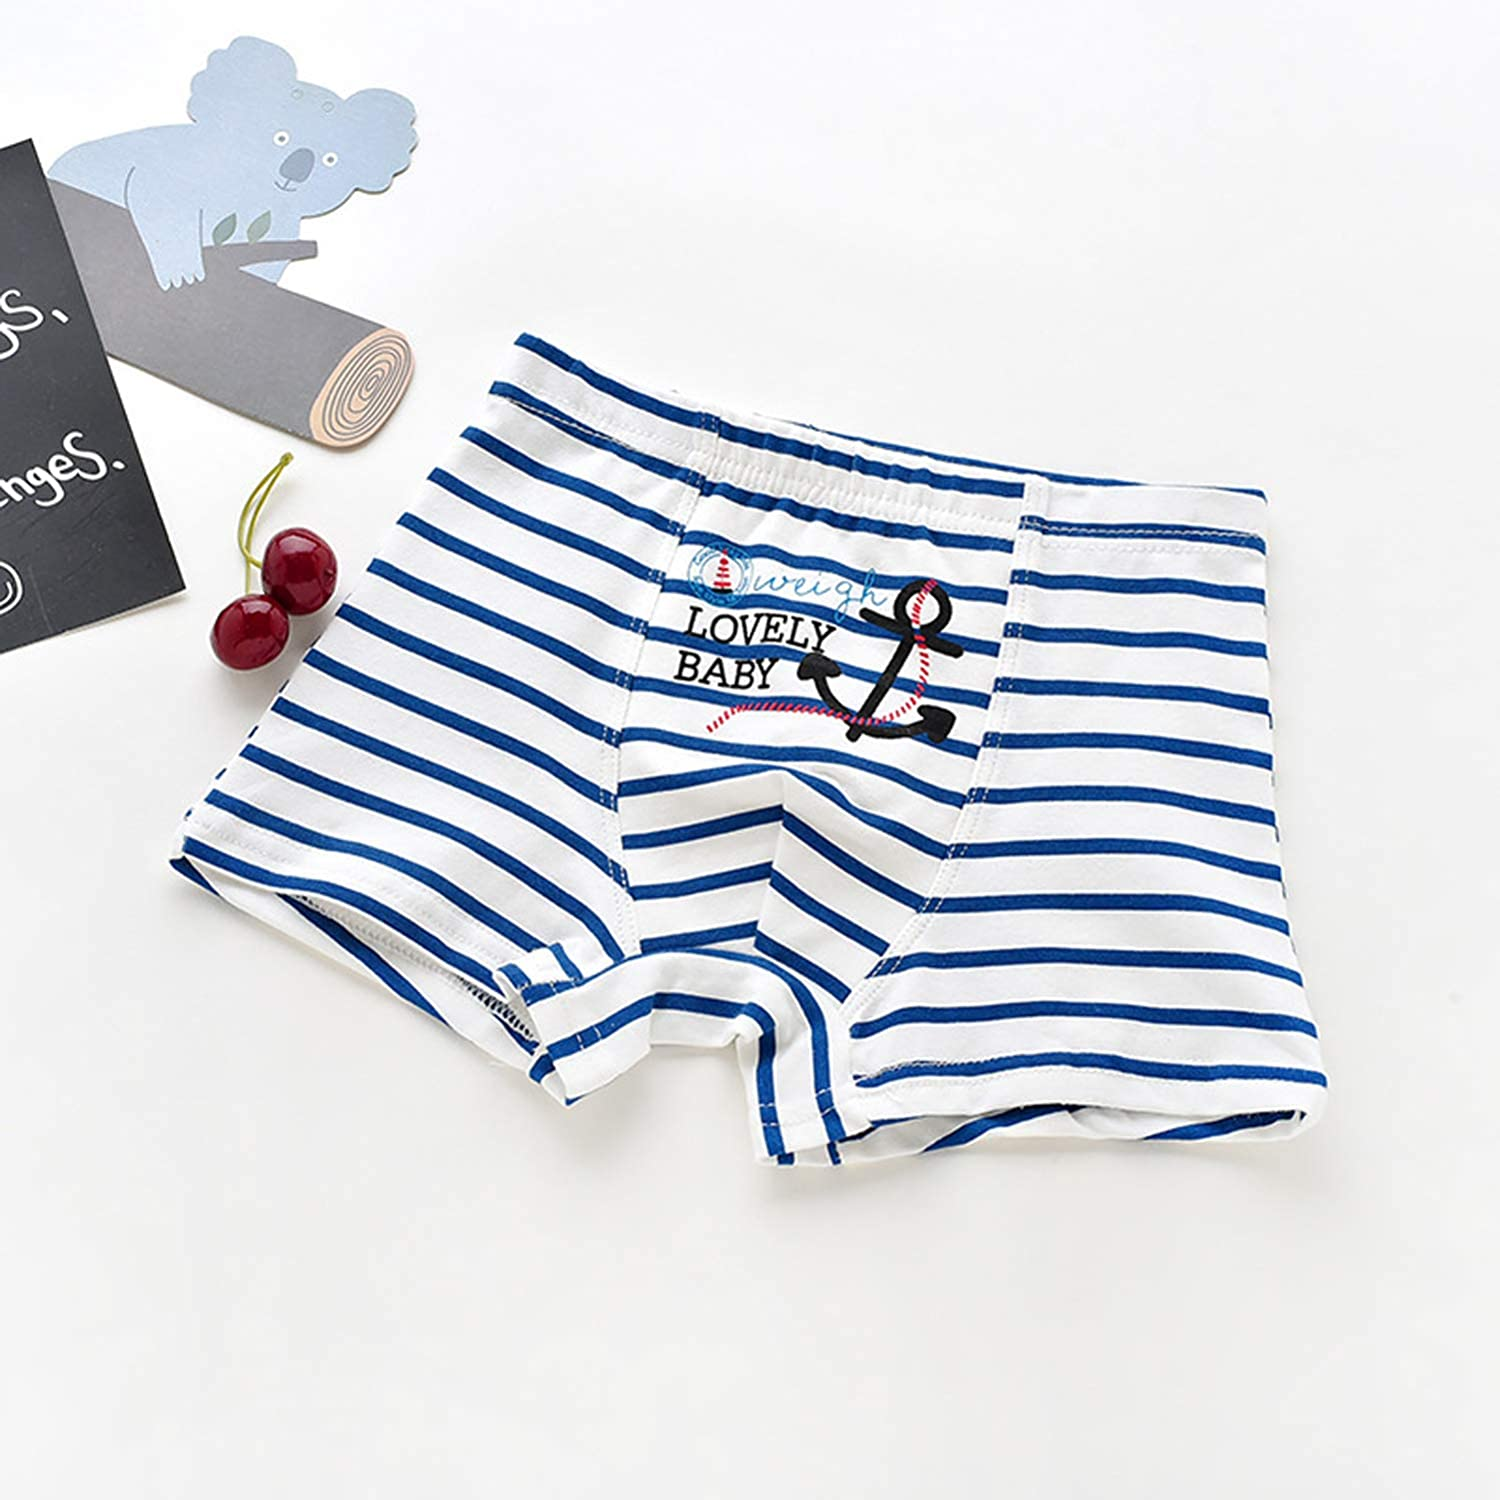 HLMBB Toddler Underwear Boxer Briefs Little Boys Kids Trainning Short Panties Flexbile